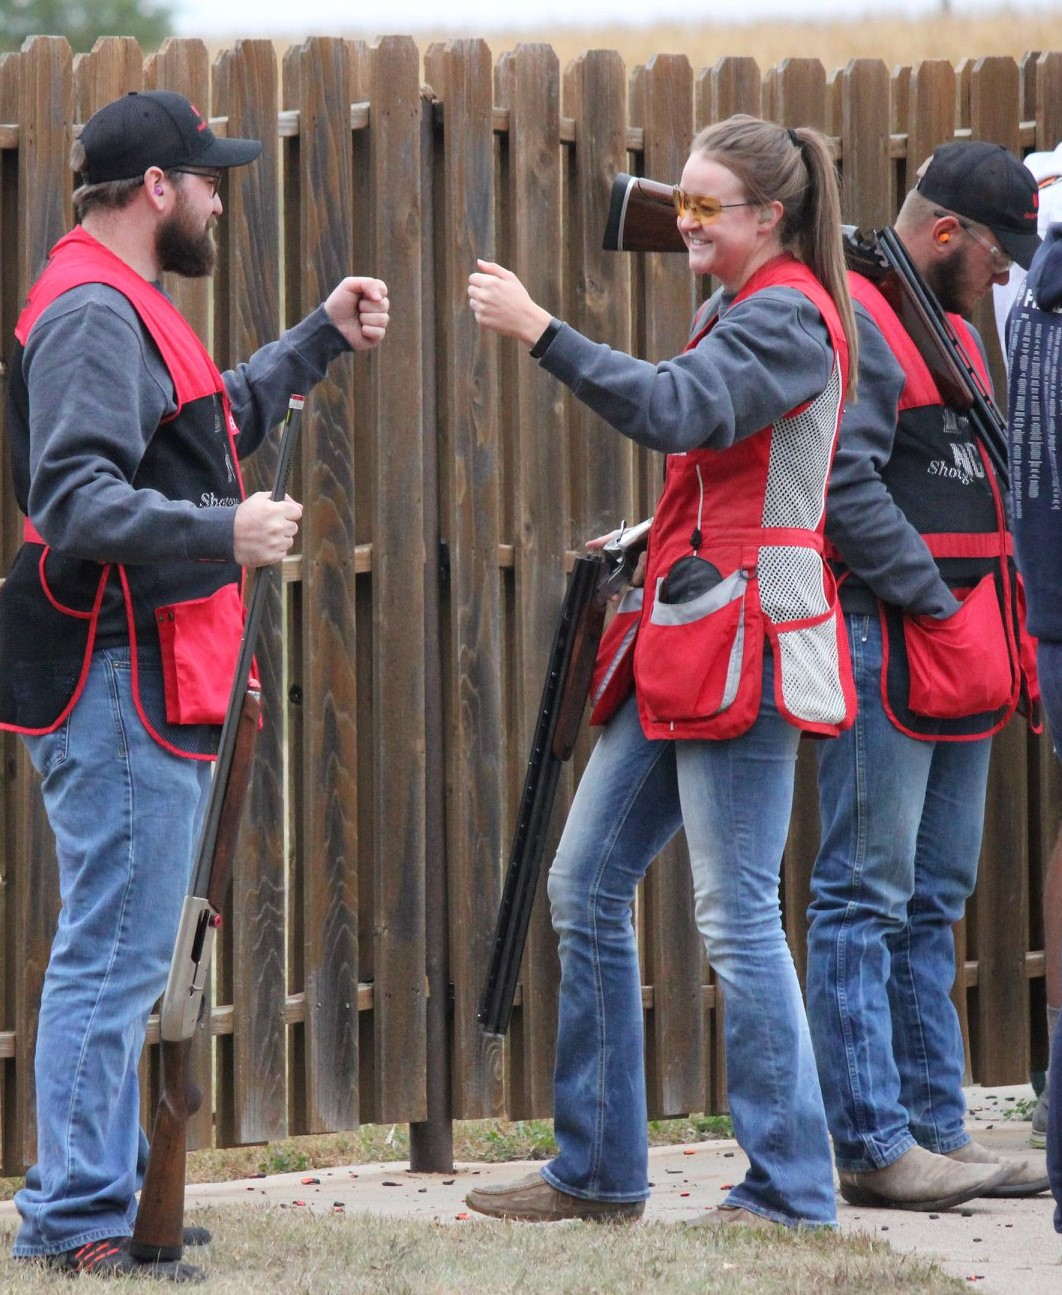 Top Aggie shooters Shawn Barger and Angela Crouse exchange a fist bump during a recent match. (Courtesy photo by Jody Crouse)